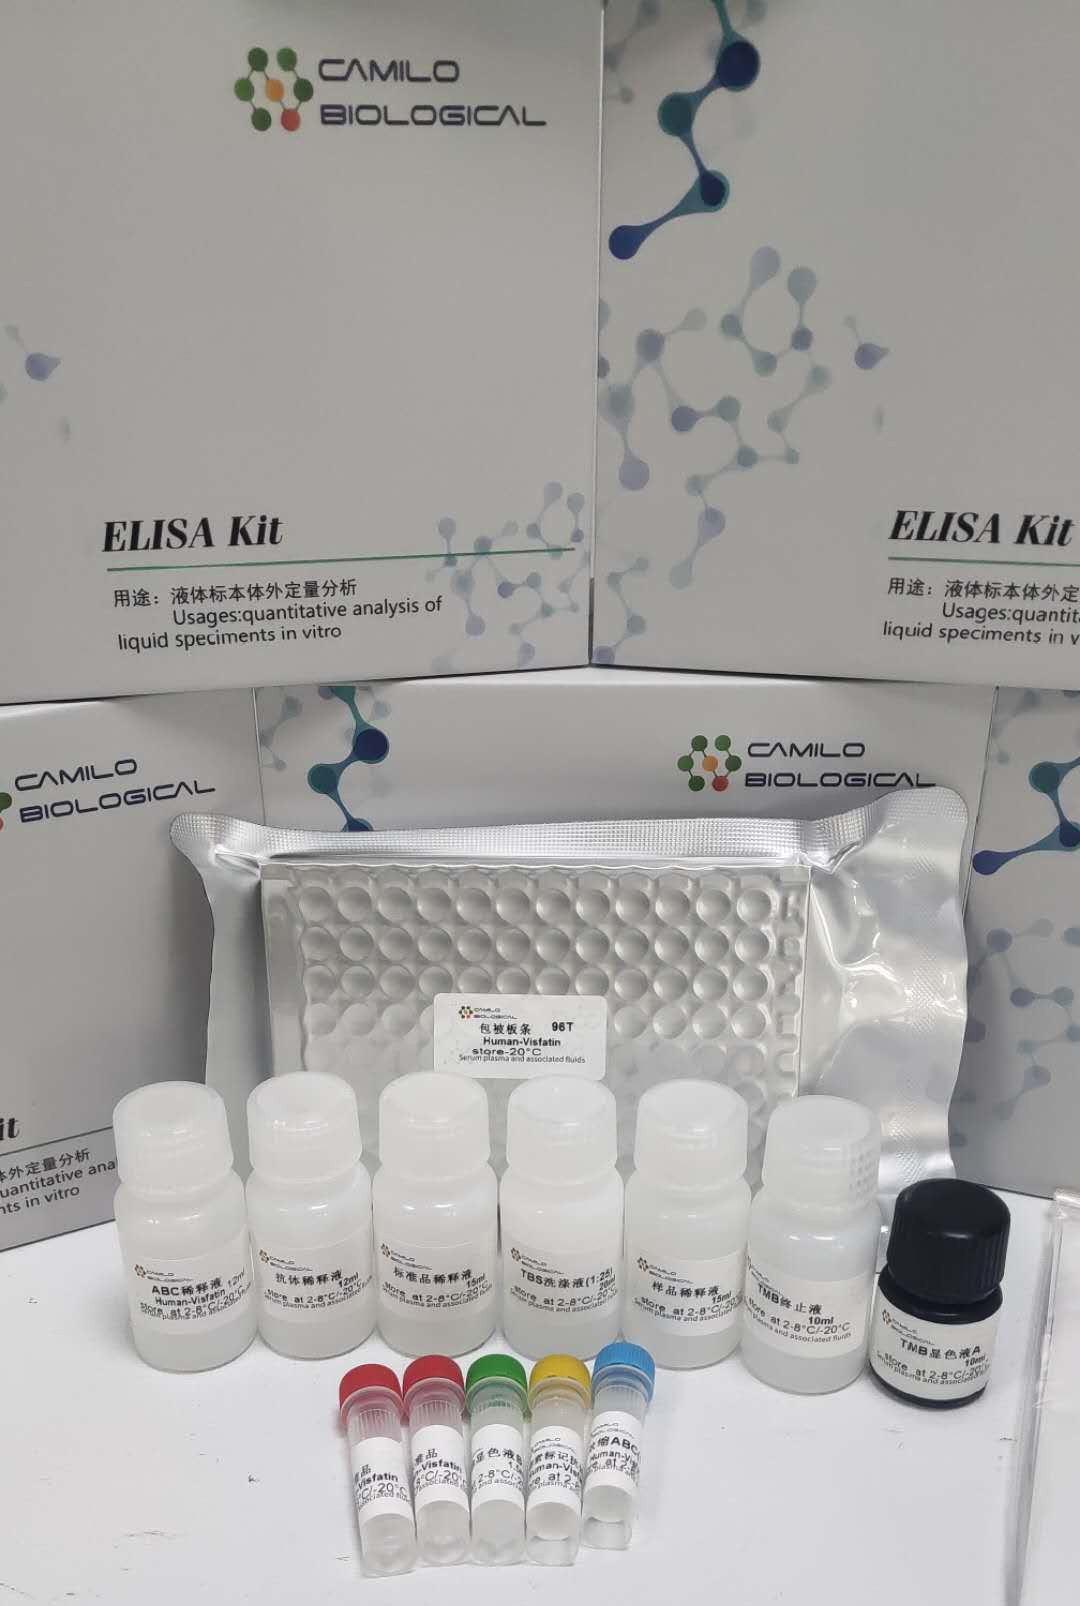 植物硫醇氧化酶(Mercaptan Peroxidase,MP)ELISA 试剂盒